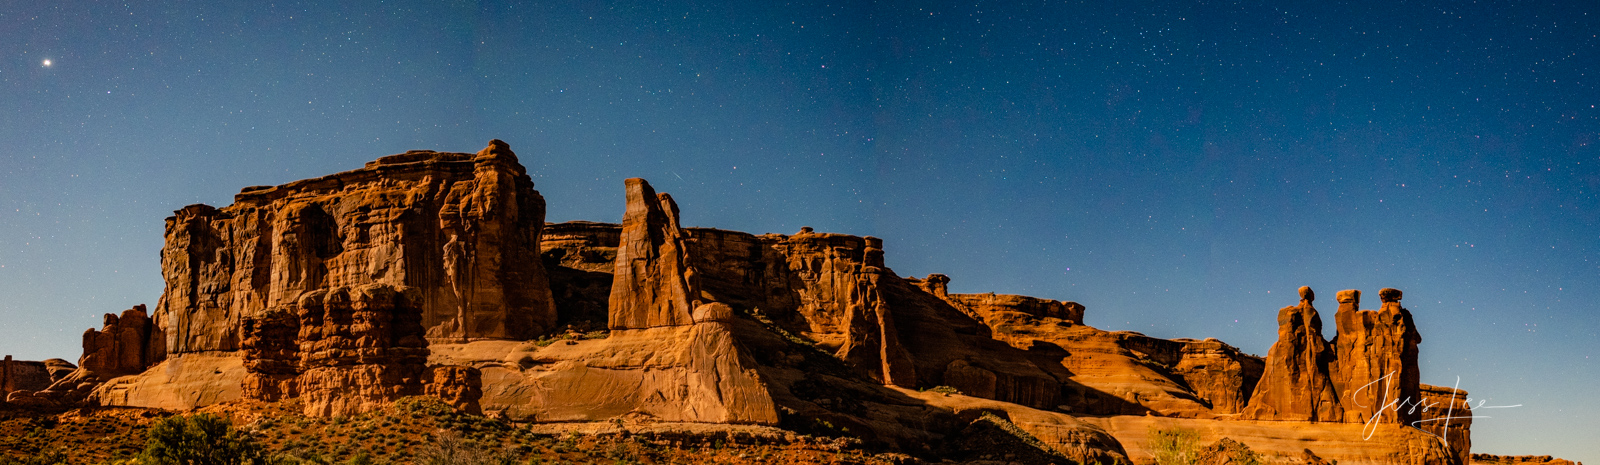 FINE ART LIMITED EDITION  PANORAMIC PRINT OF ARCHES NATIONAL PARK at NIGHT Arches Landscape photo print of Utah Landscape.This...